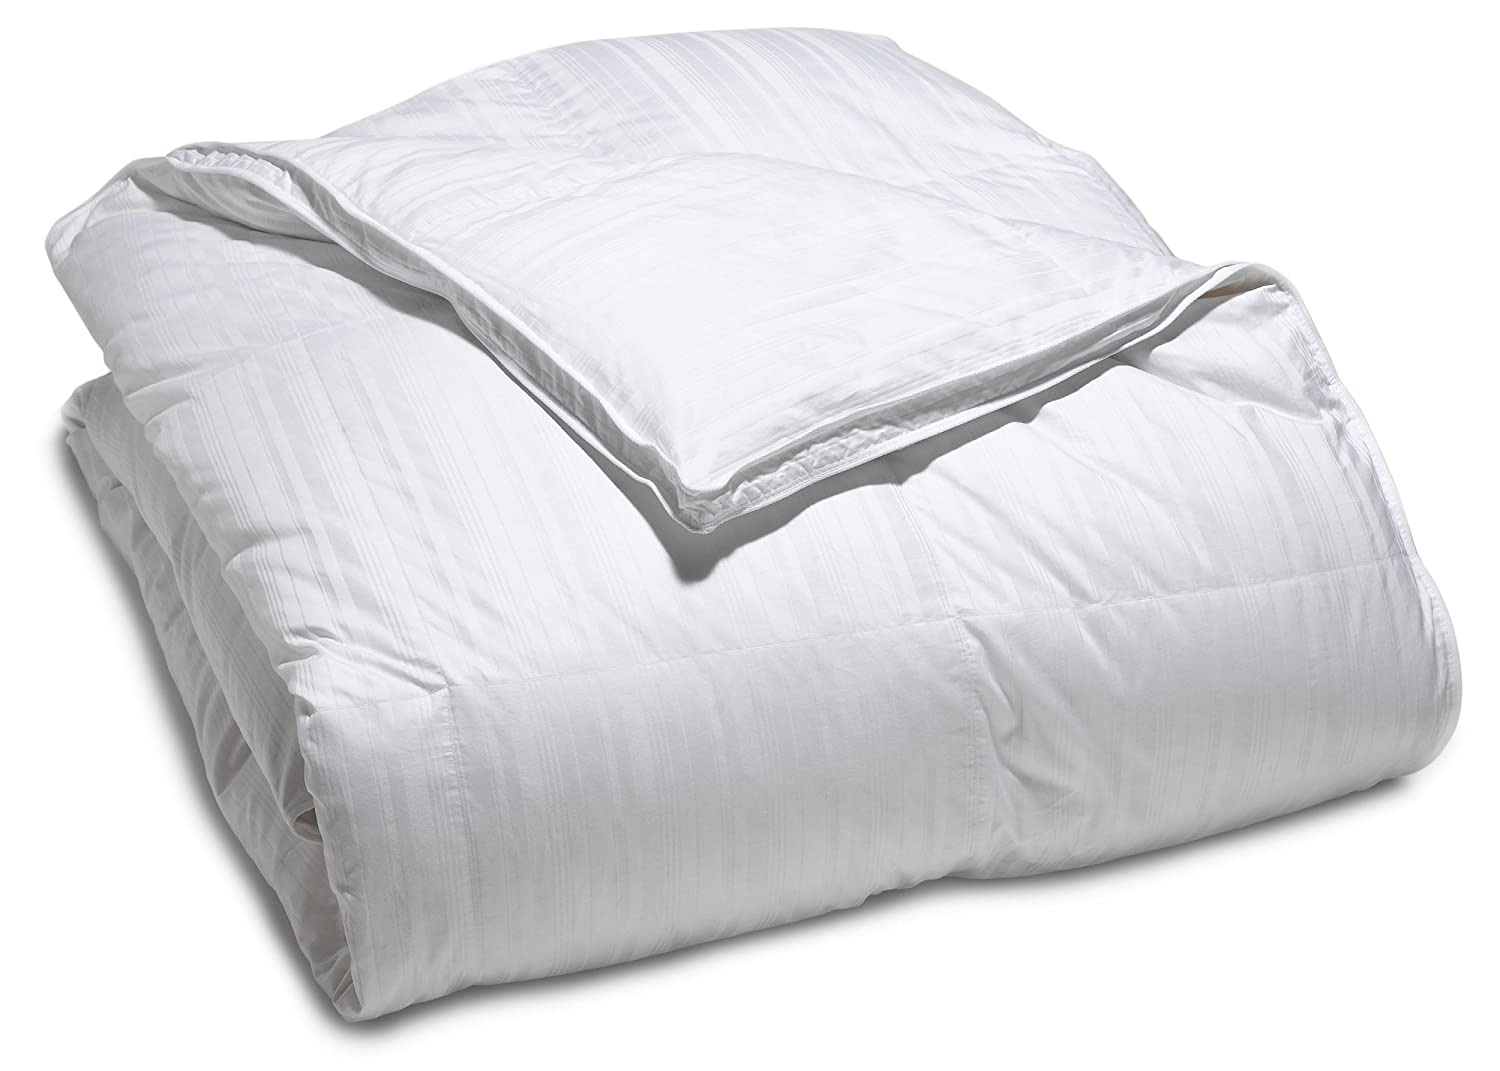 Pinzon Hypoallergenic White Duck Down Comforter 100/% Cotton Cover Medium Warmth Twin AMA100CO0120-068-088